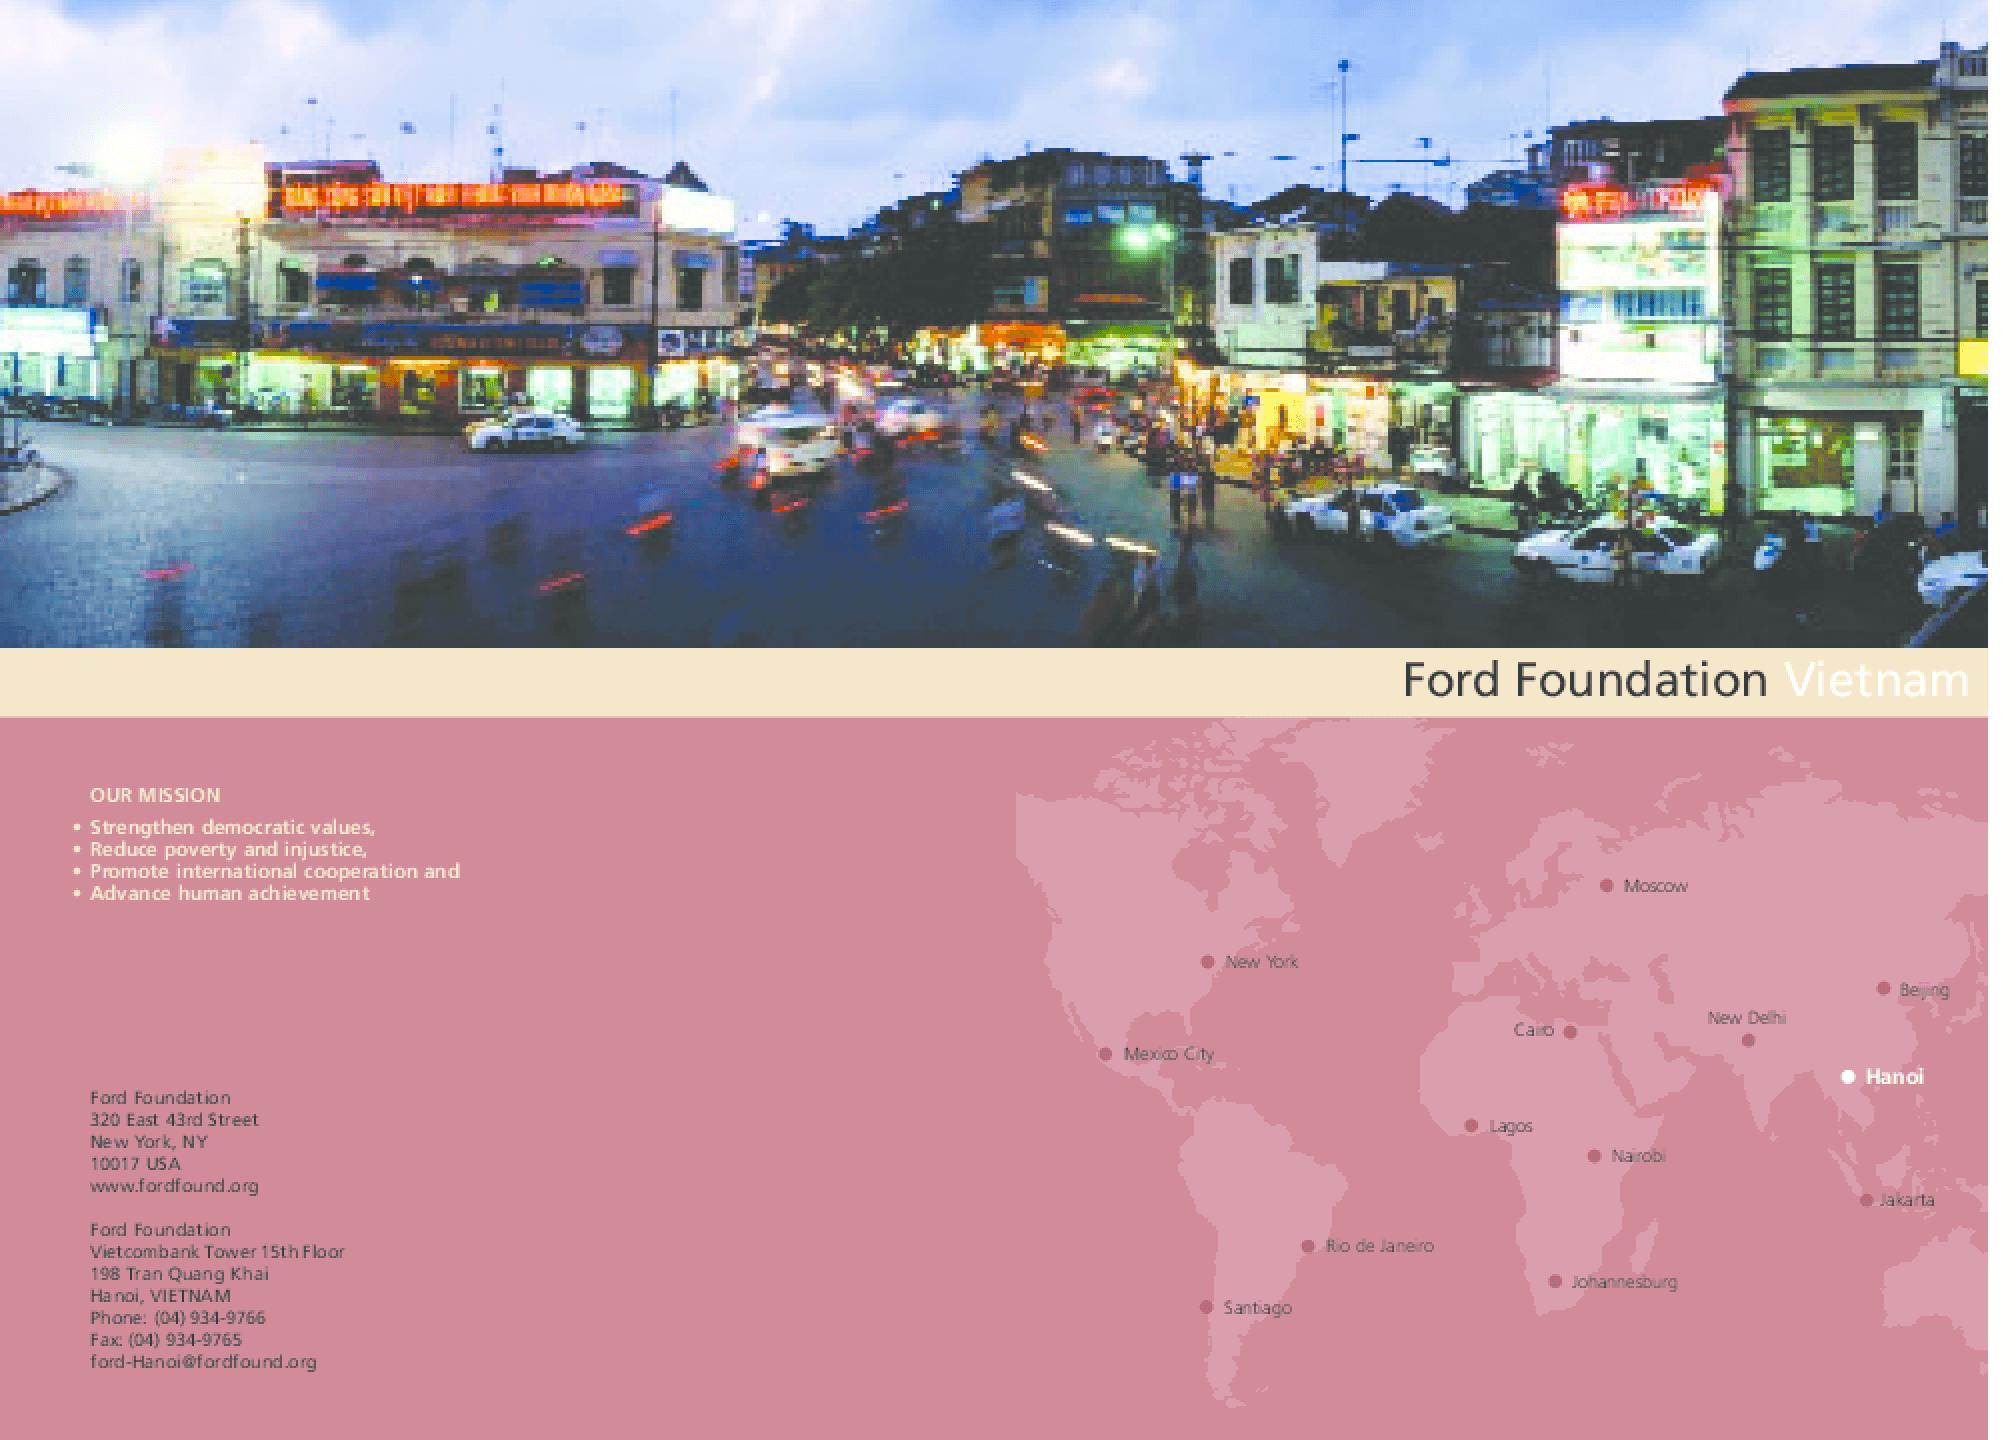 Ford Foundation Vietnam